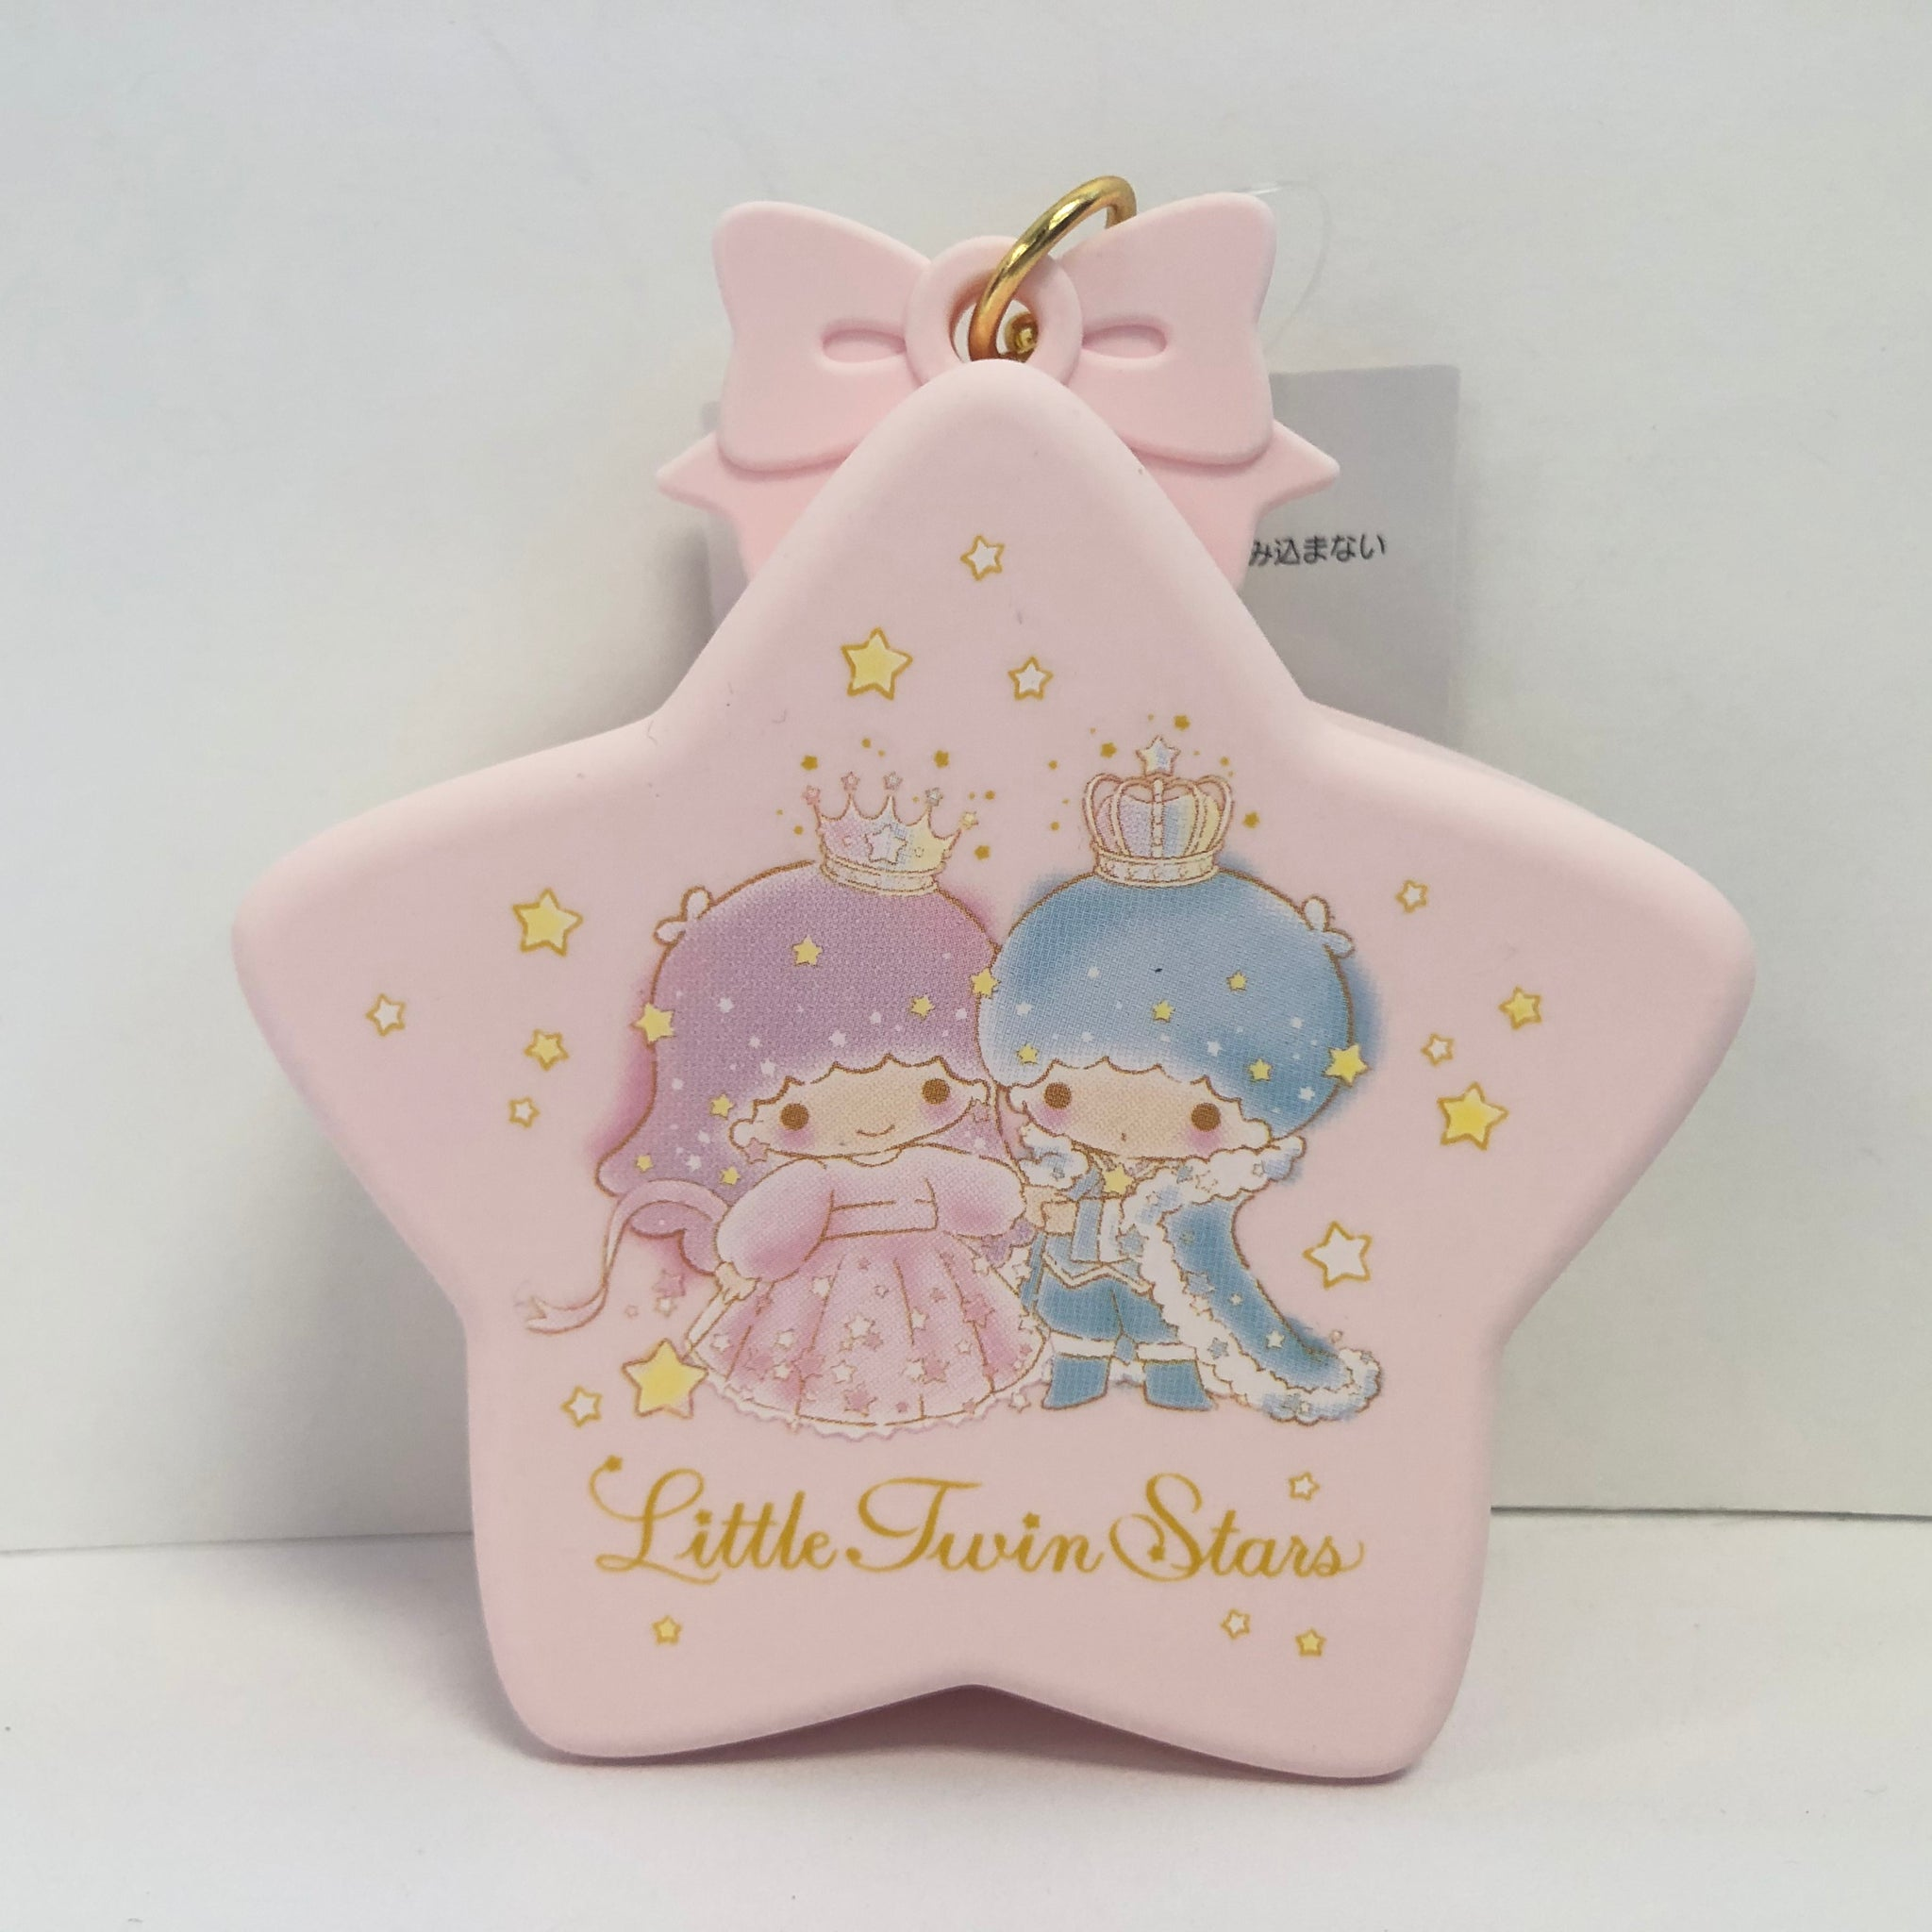 Little Twin Stars Crown Silicone Star Pouch